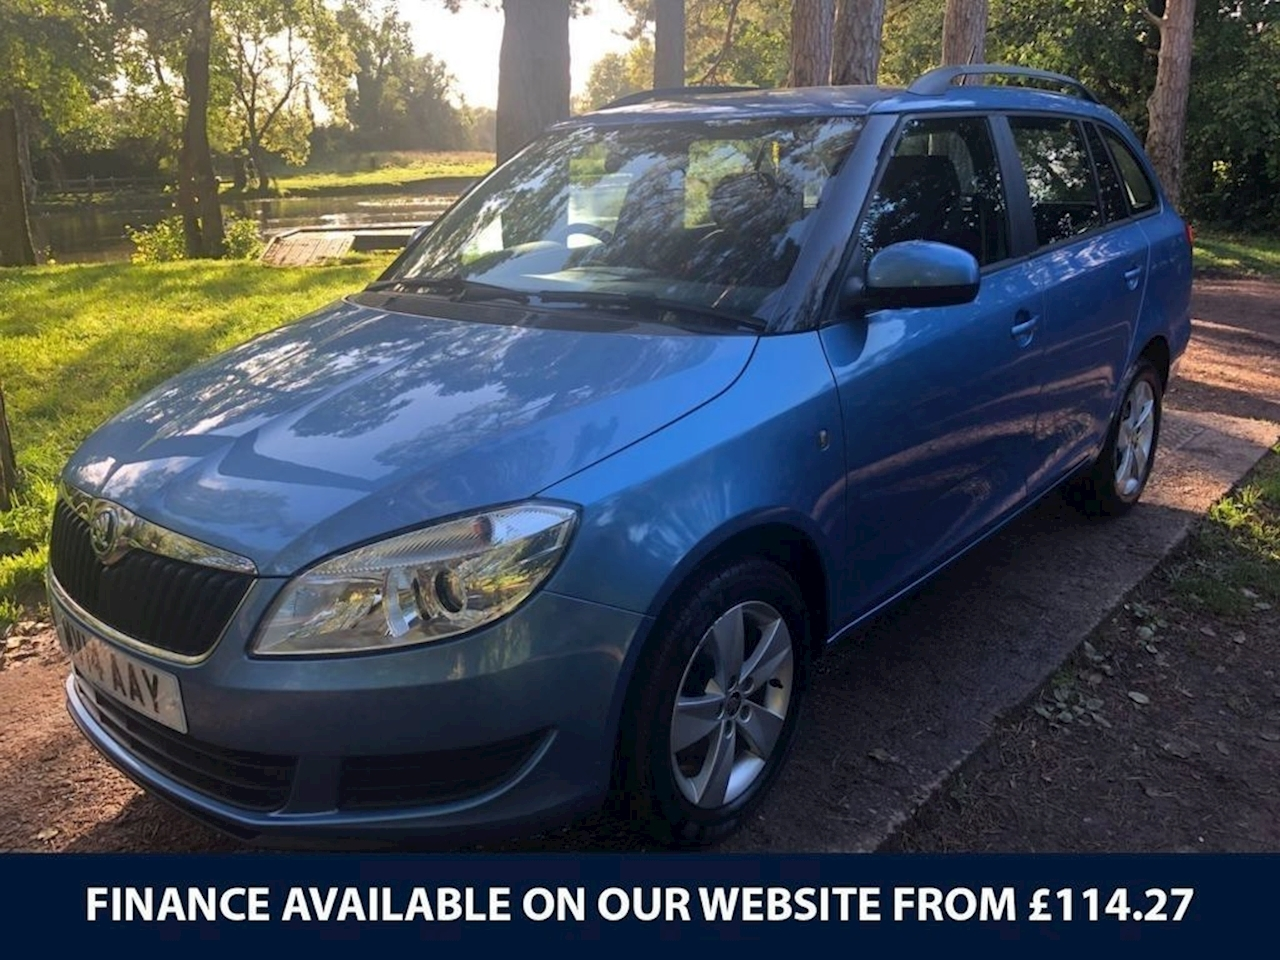 SKODA Fabia Estate 1.6 Manual Diesel